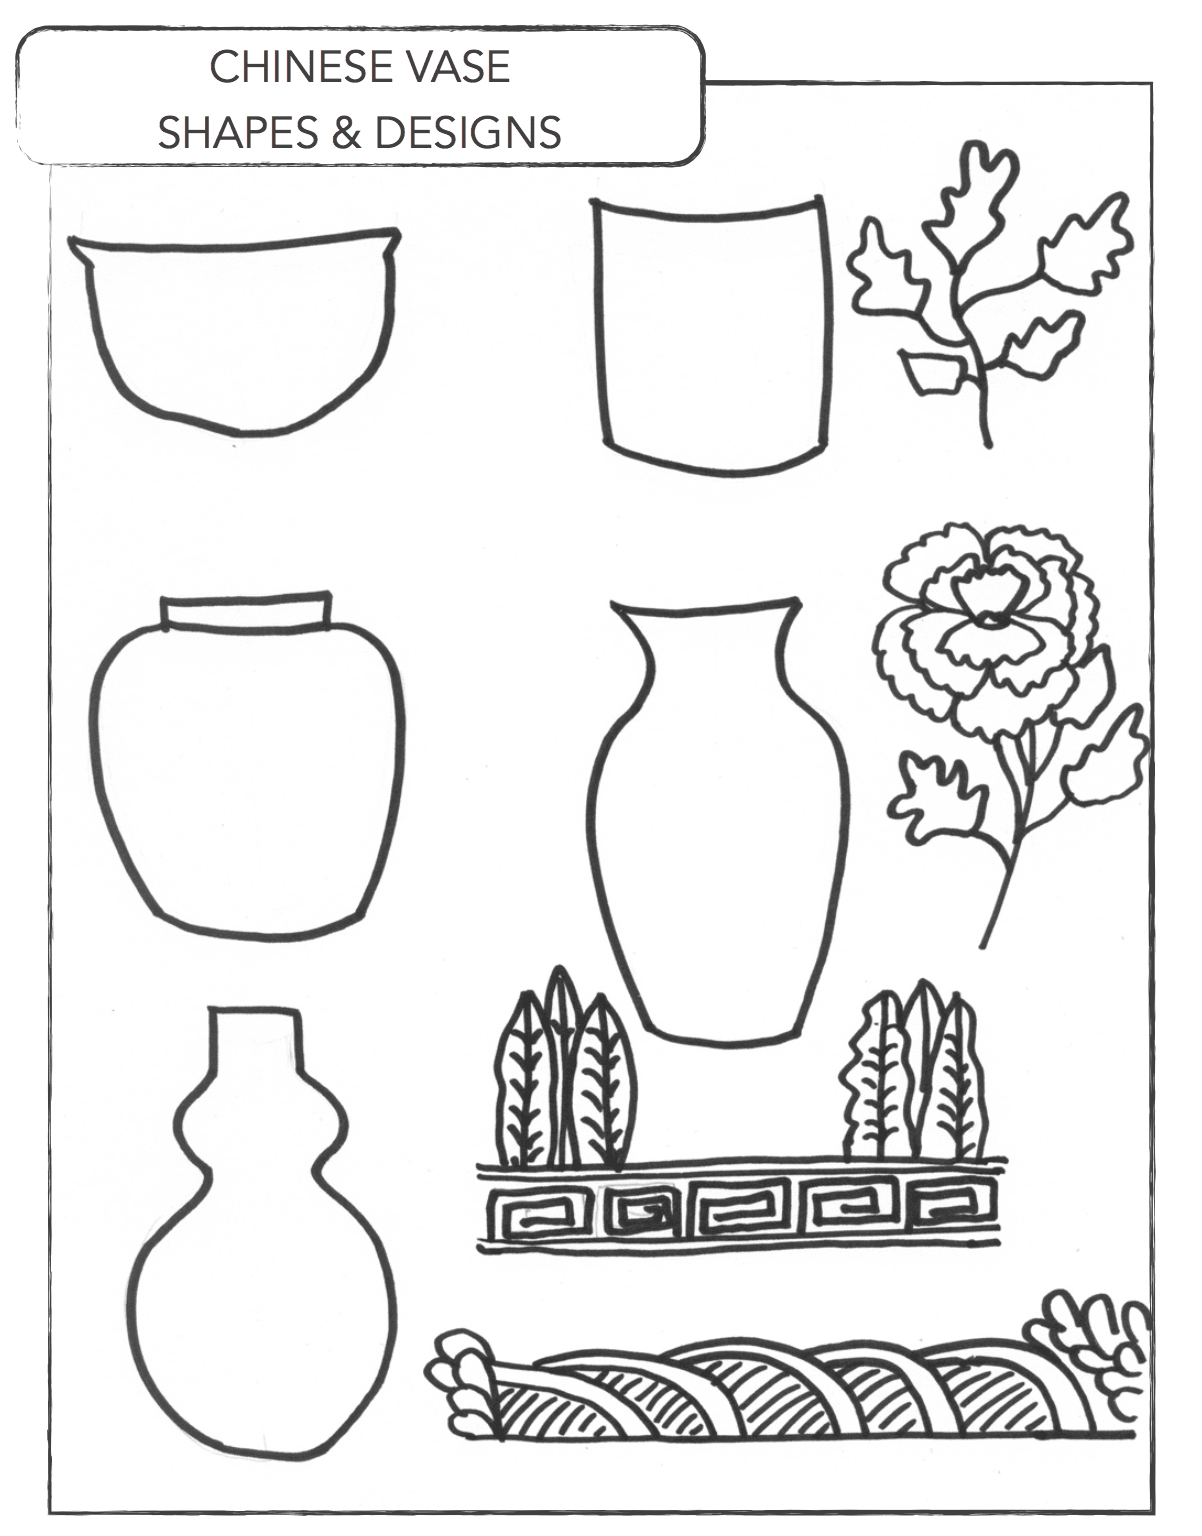 Chinese vases shapes example for art lesson